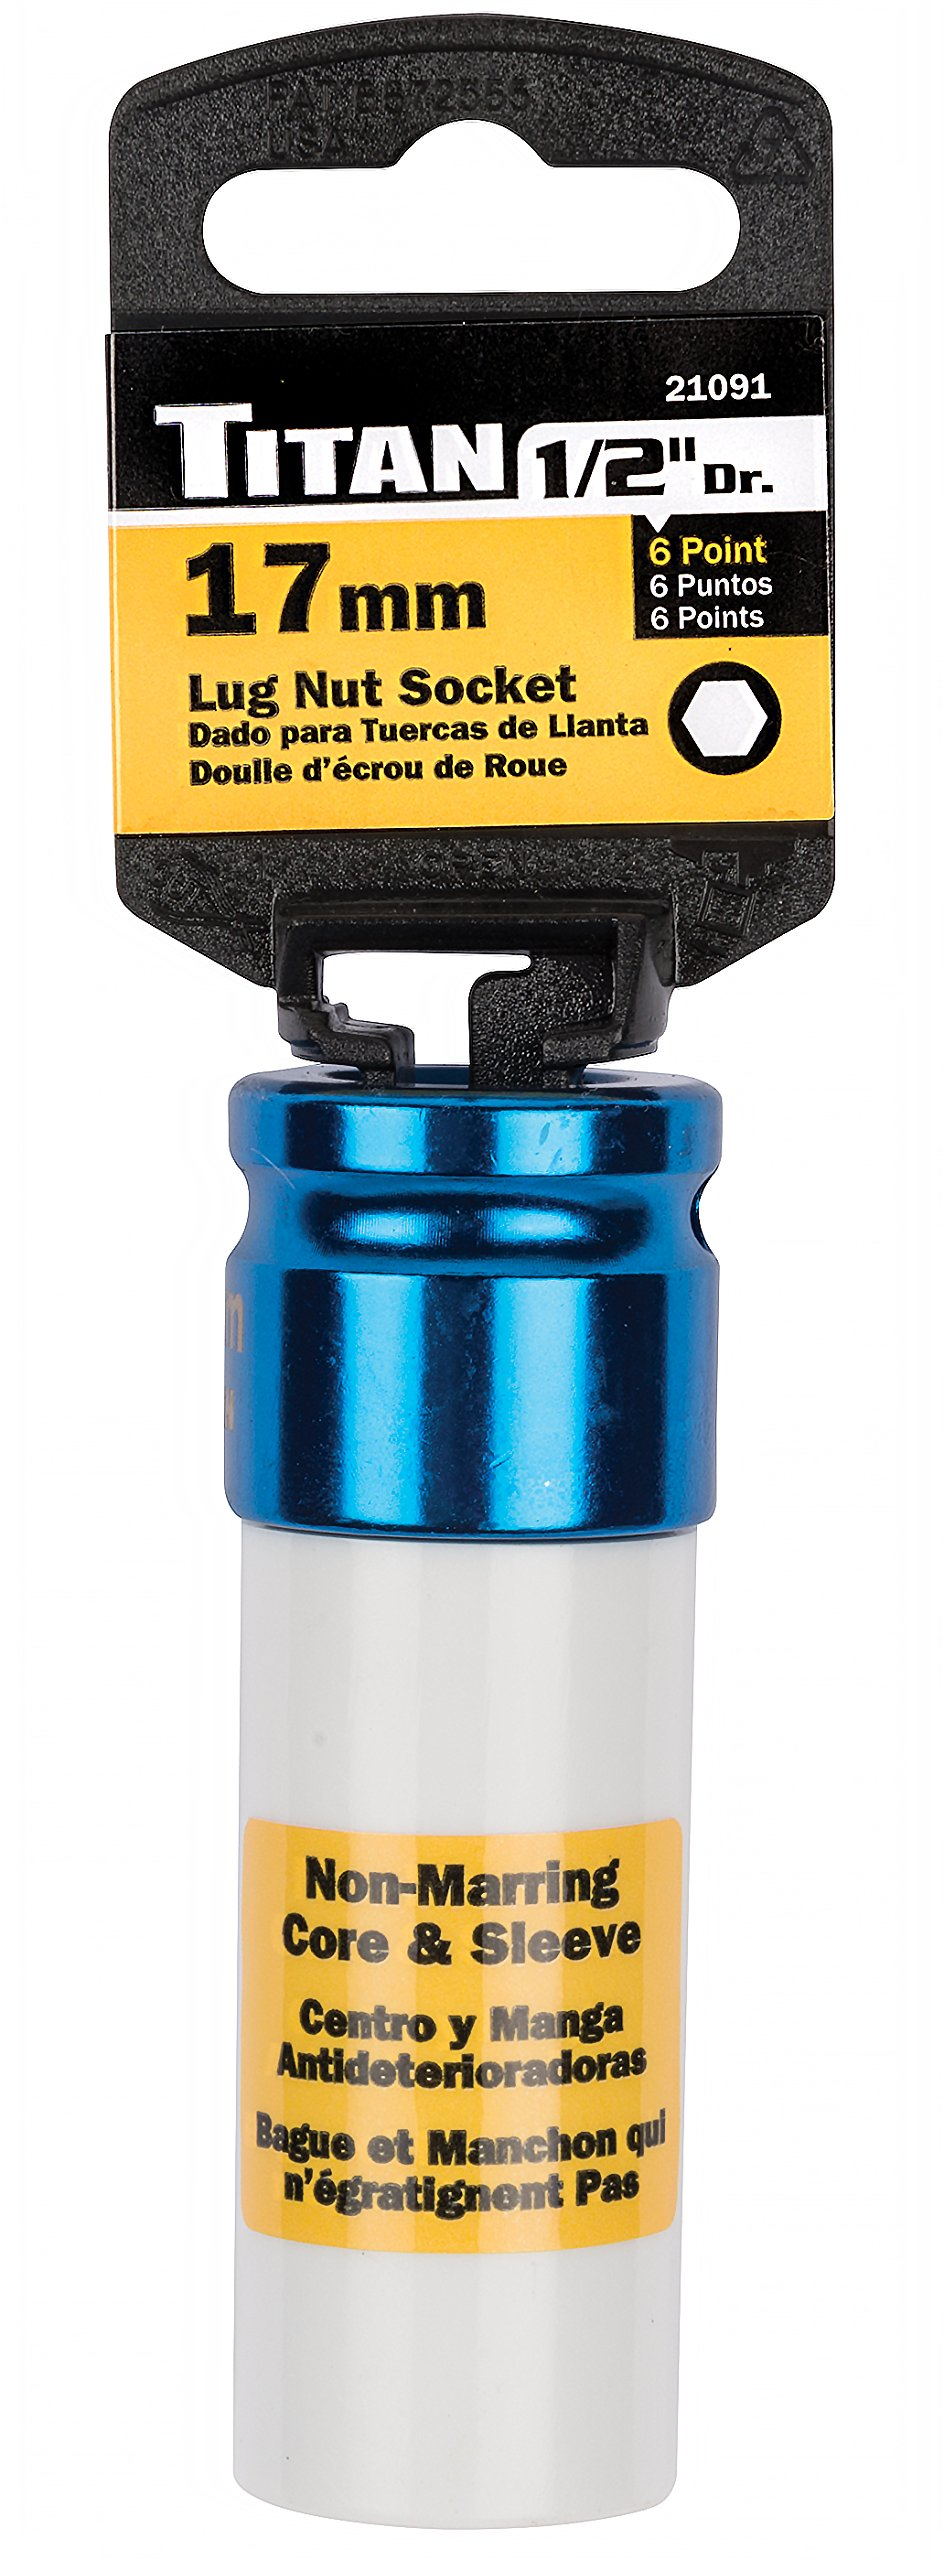 Titan Tools 21091 17mm 1/2'' Drive Non-Marring Deep Lug Nut Socket by Titan Tools (Image #2)